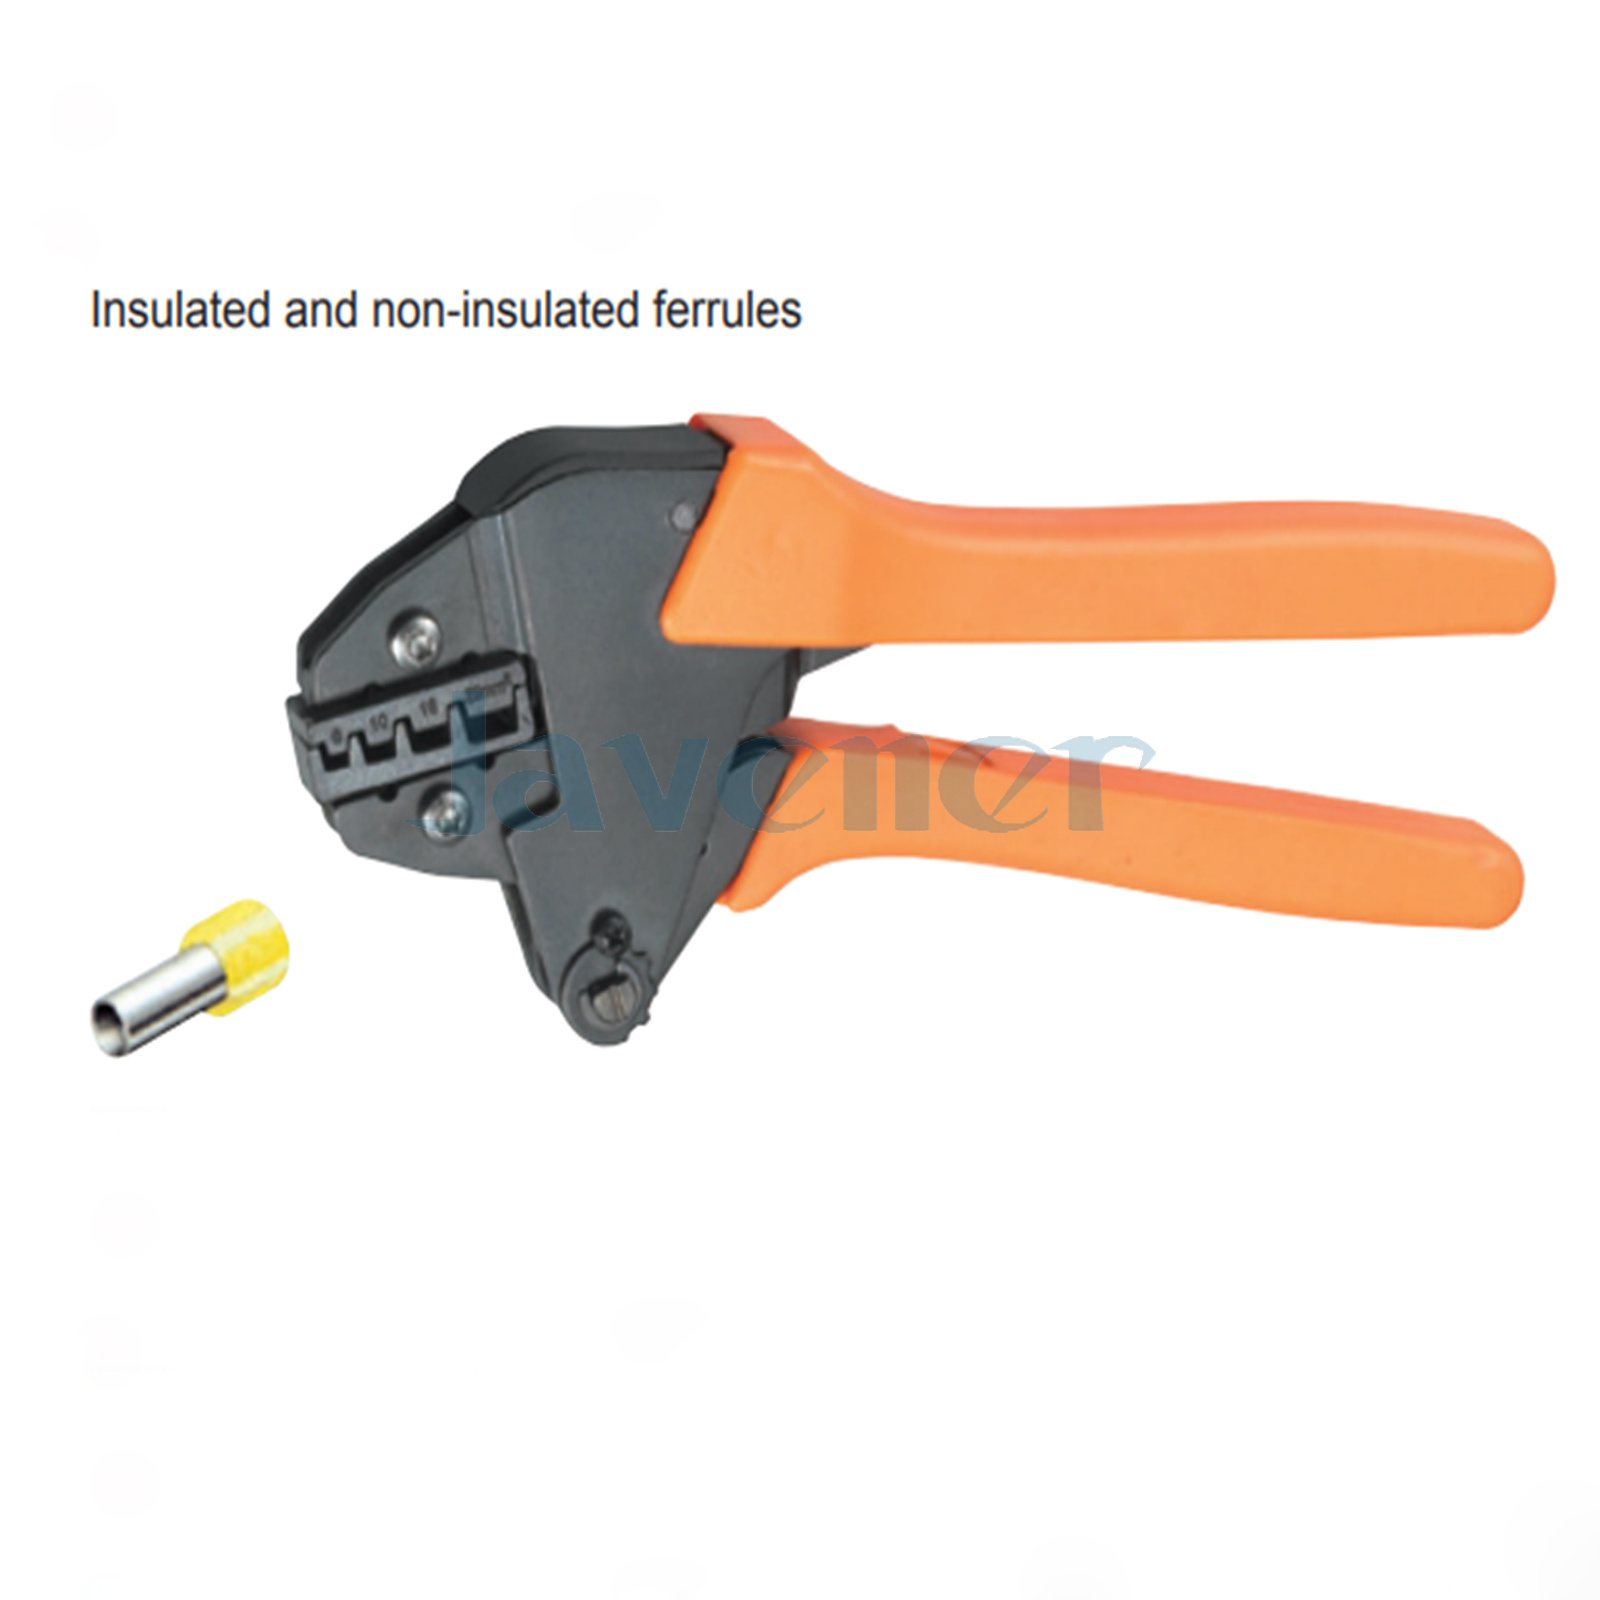 10-3AWG 6,10,16,25mm² Insulated and Non-insulated Ferrules Crimping Plier VH2